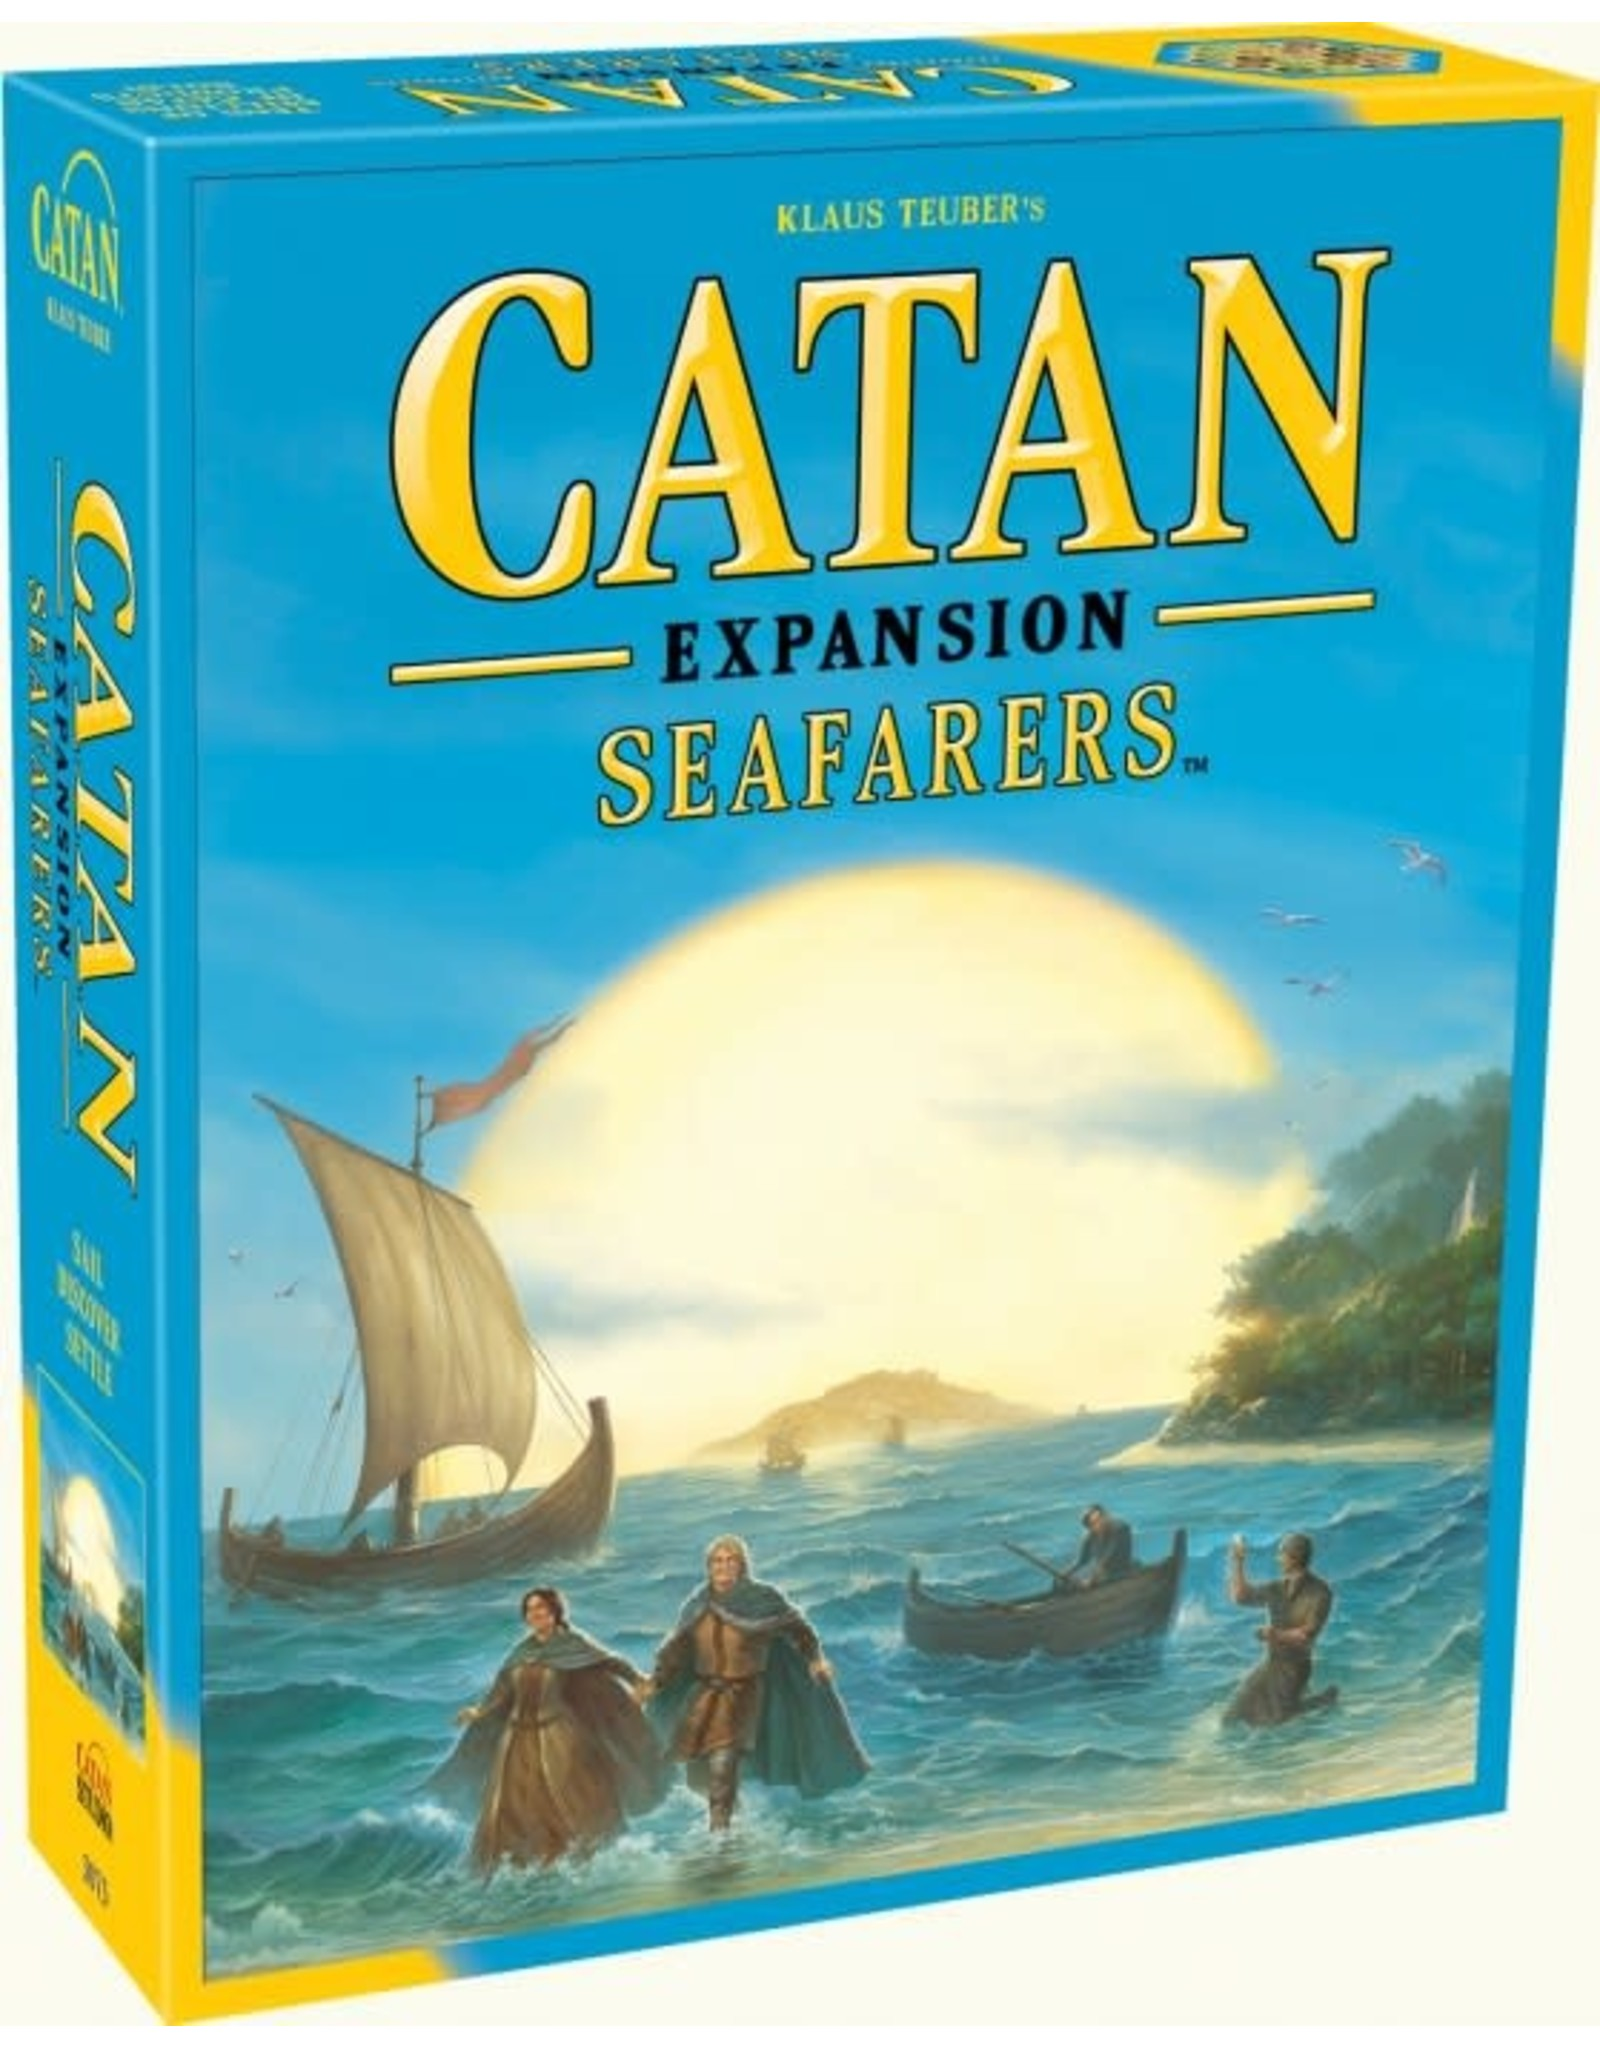 CATAN Settlers of Catan Expansion: Seafarers